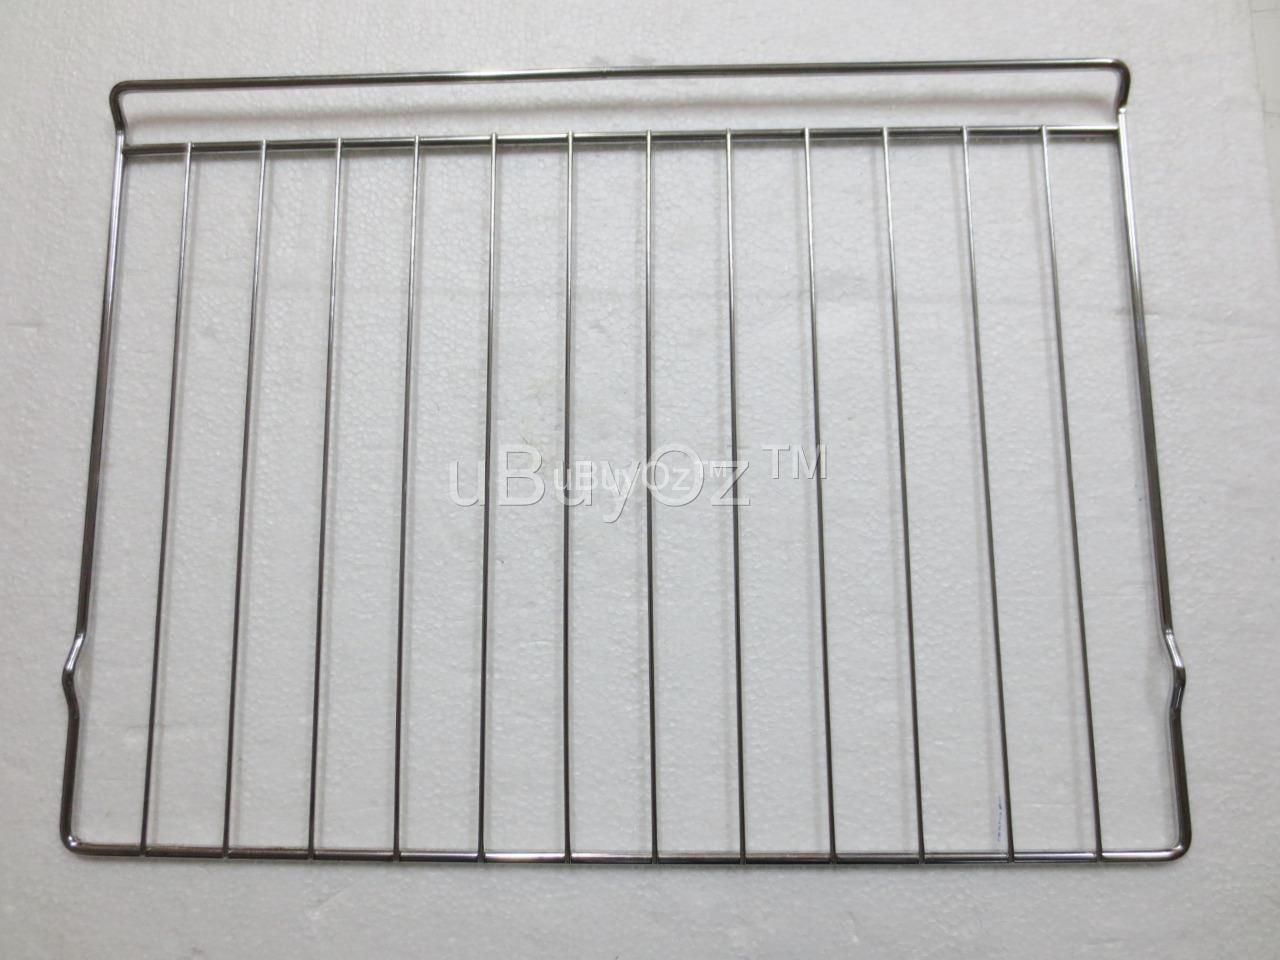 Westinghouse Oven Cooker Wire Rack 0327001221